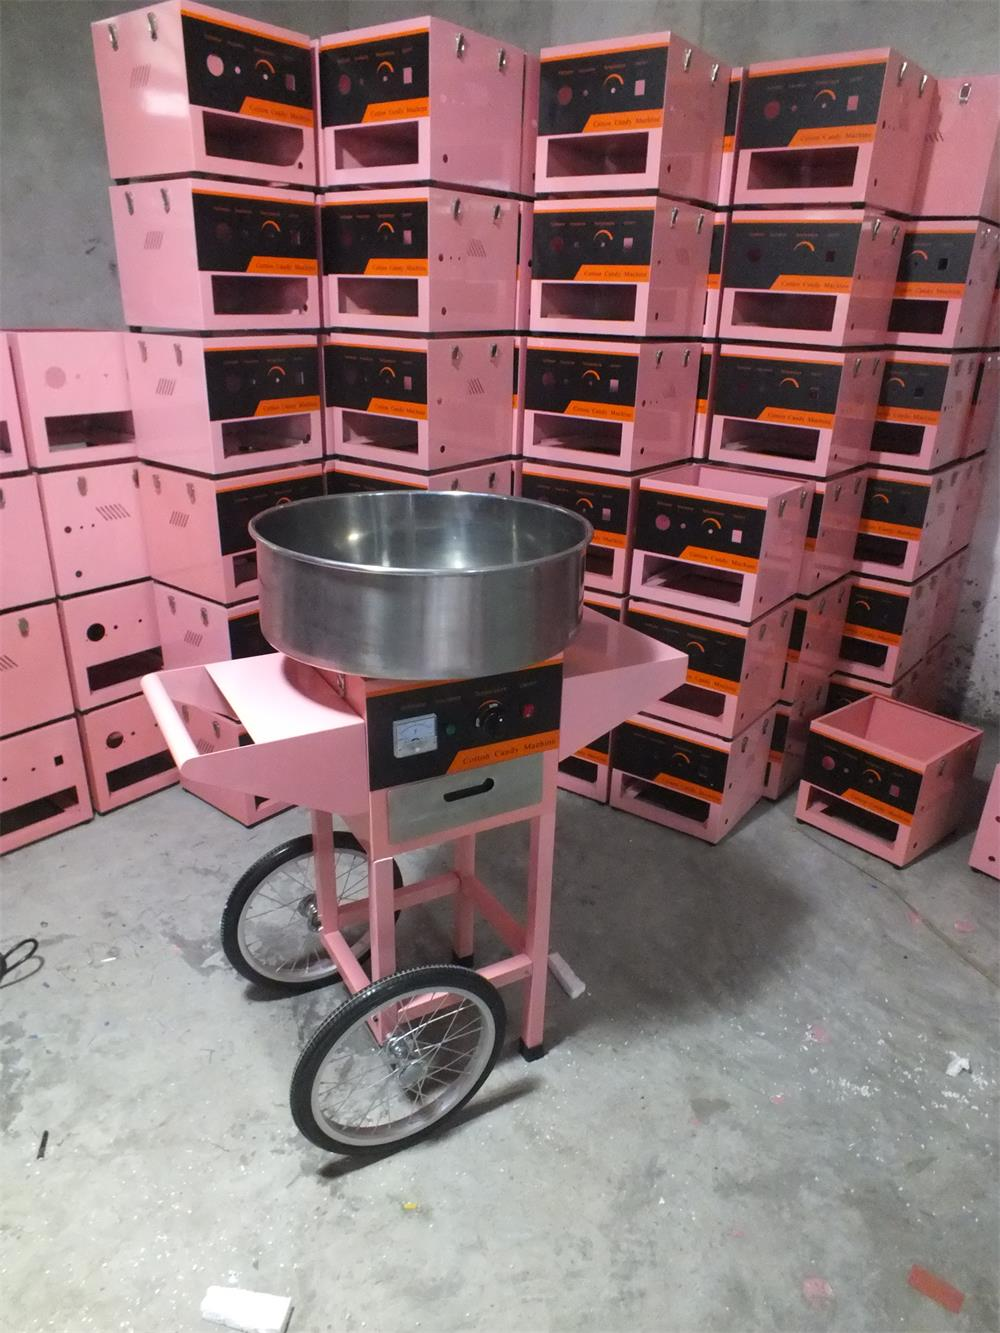 Christmas gift hot sale industrial cotton candy machine in pink low price cotton candy machine with cart composite suite new toys dolls crane claw machine excavator simulation vending machine for sale gift machine in operated coins